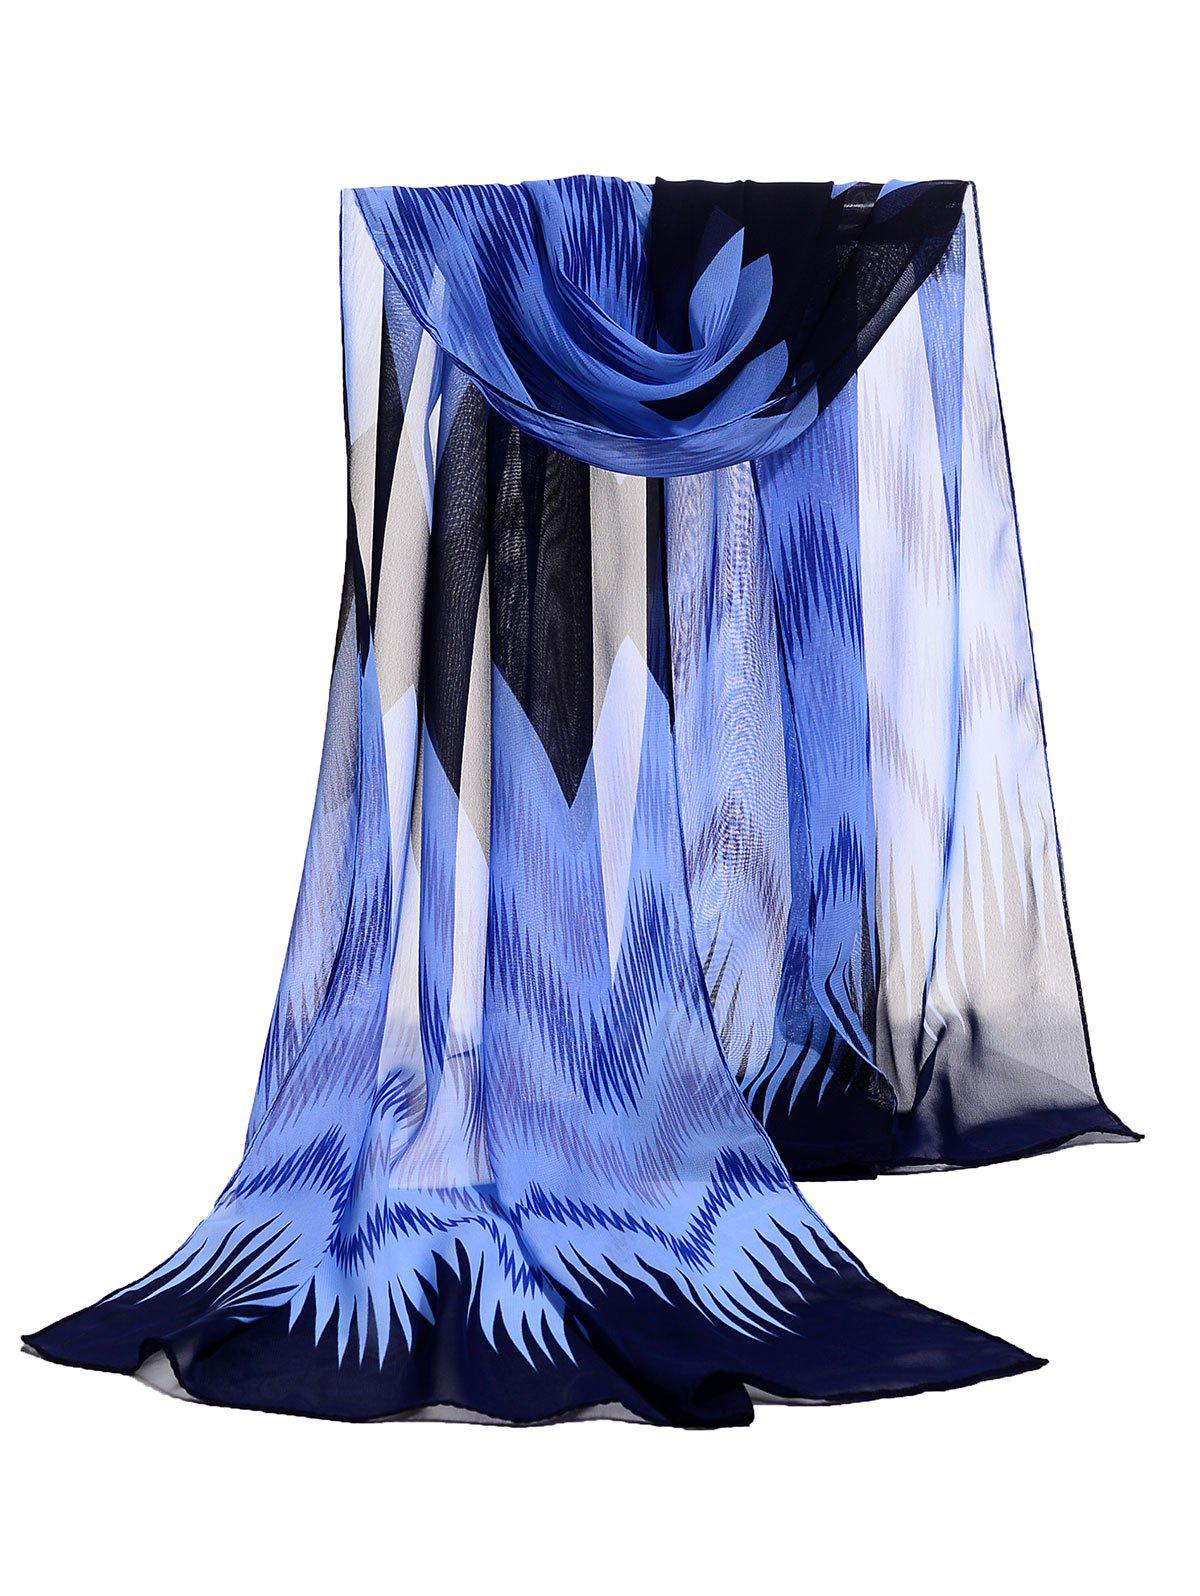 Soft Wave Stripe Pattern Silky Chiffon Scarf - CADETBLUE